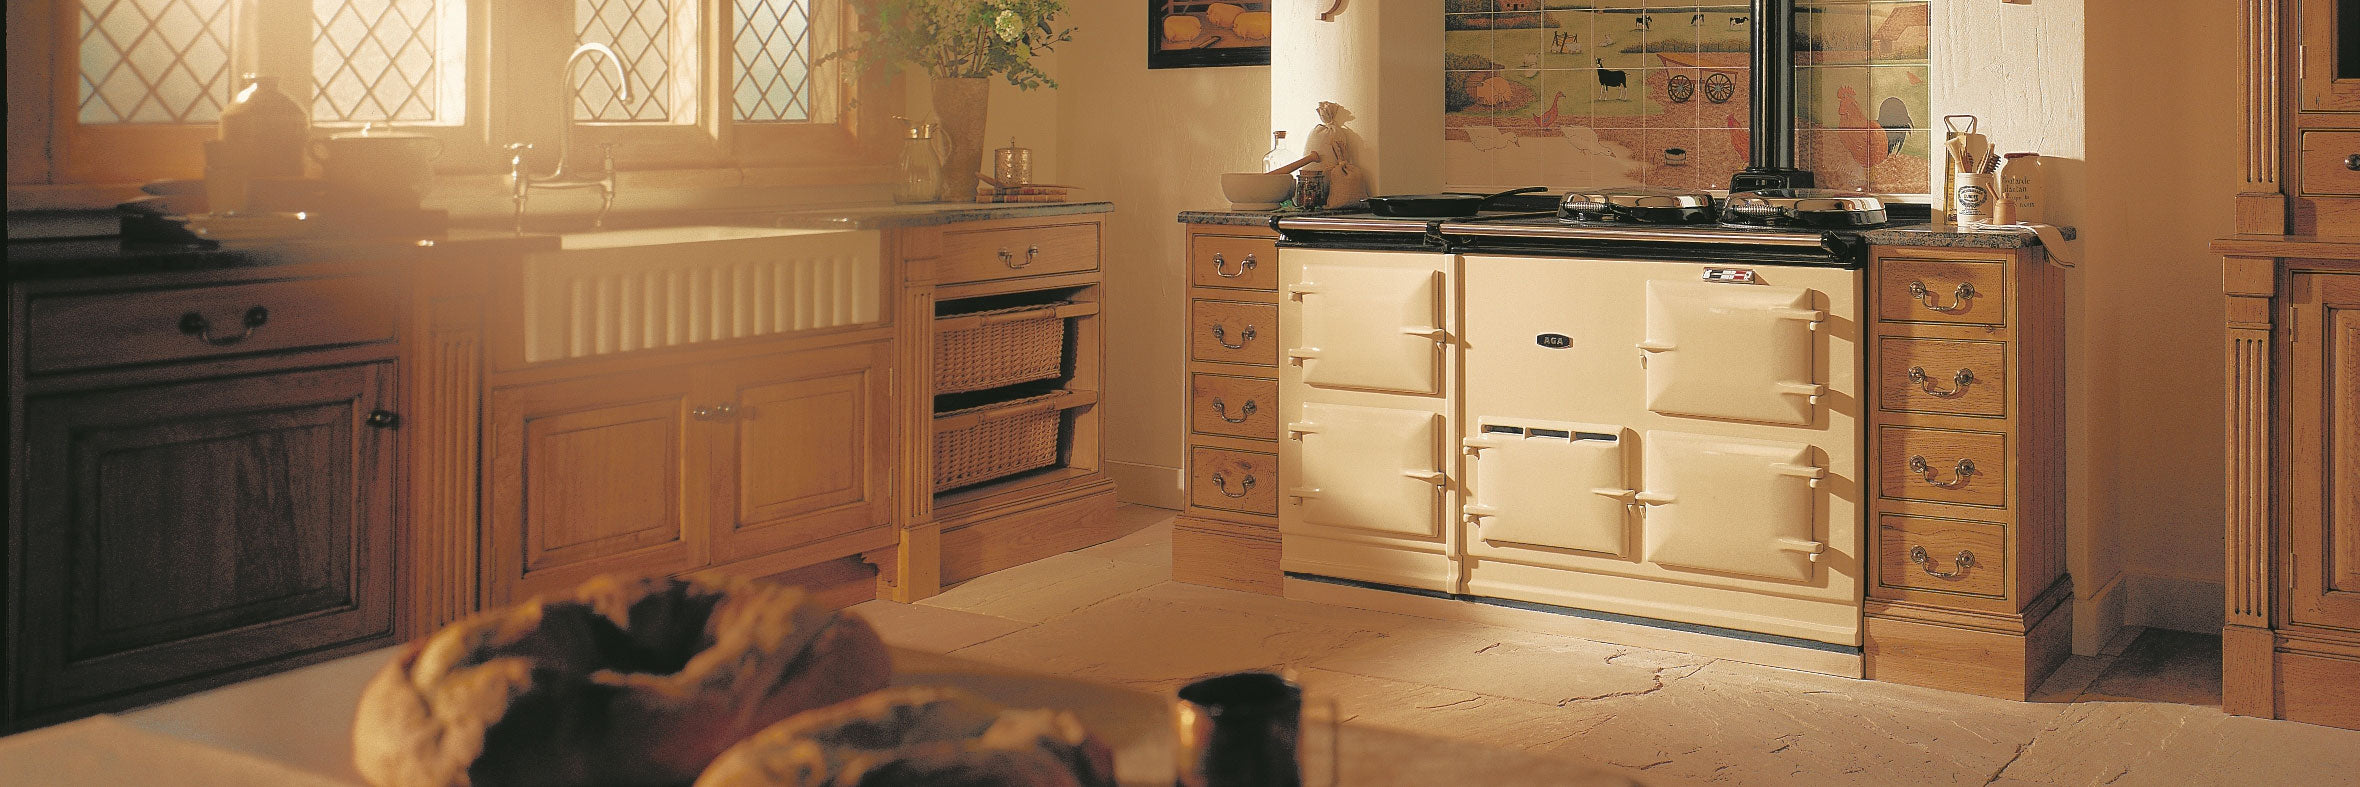 Aga hob covers, re-enamelling and spares.